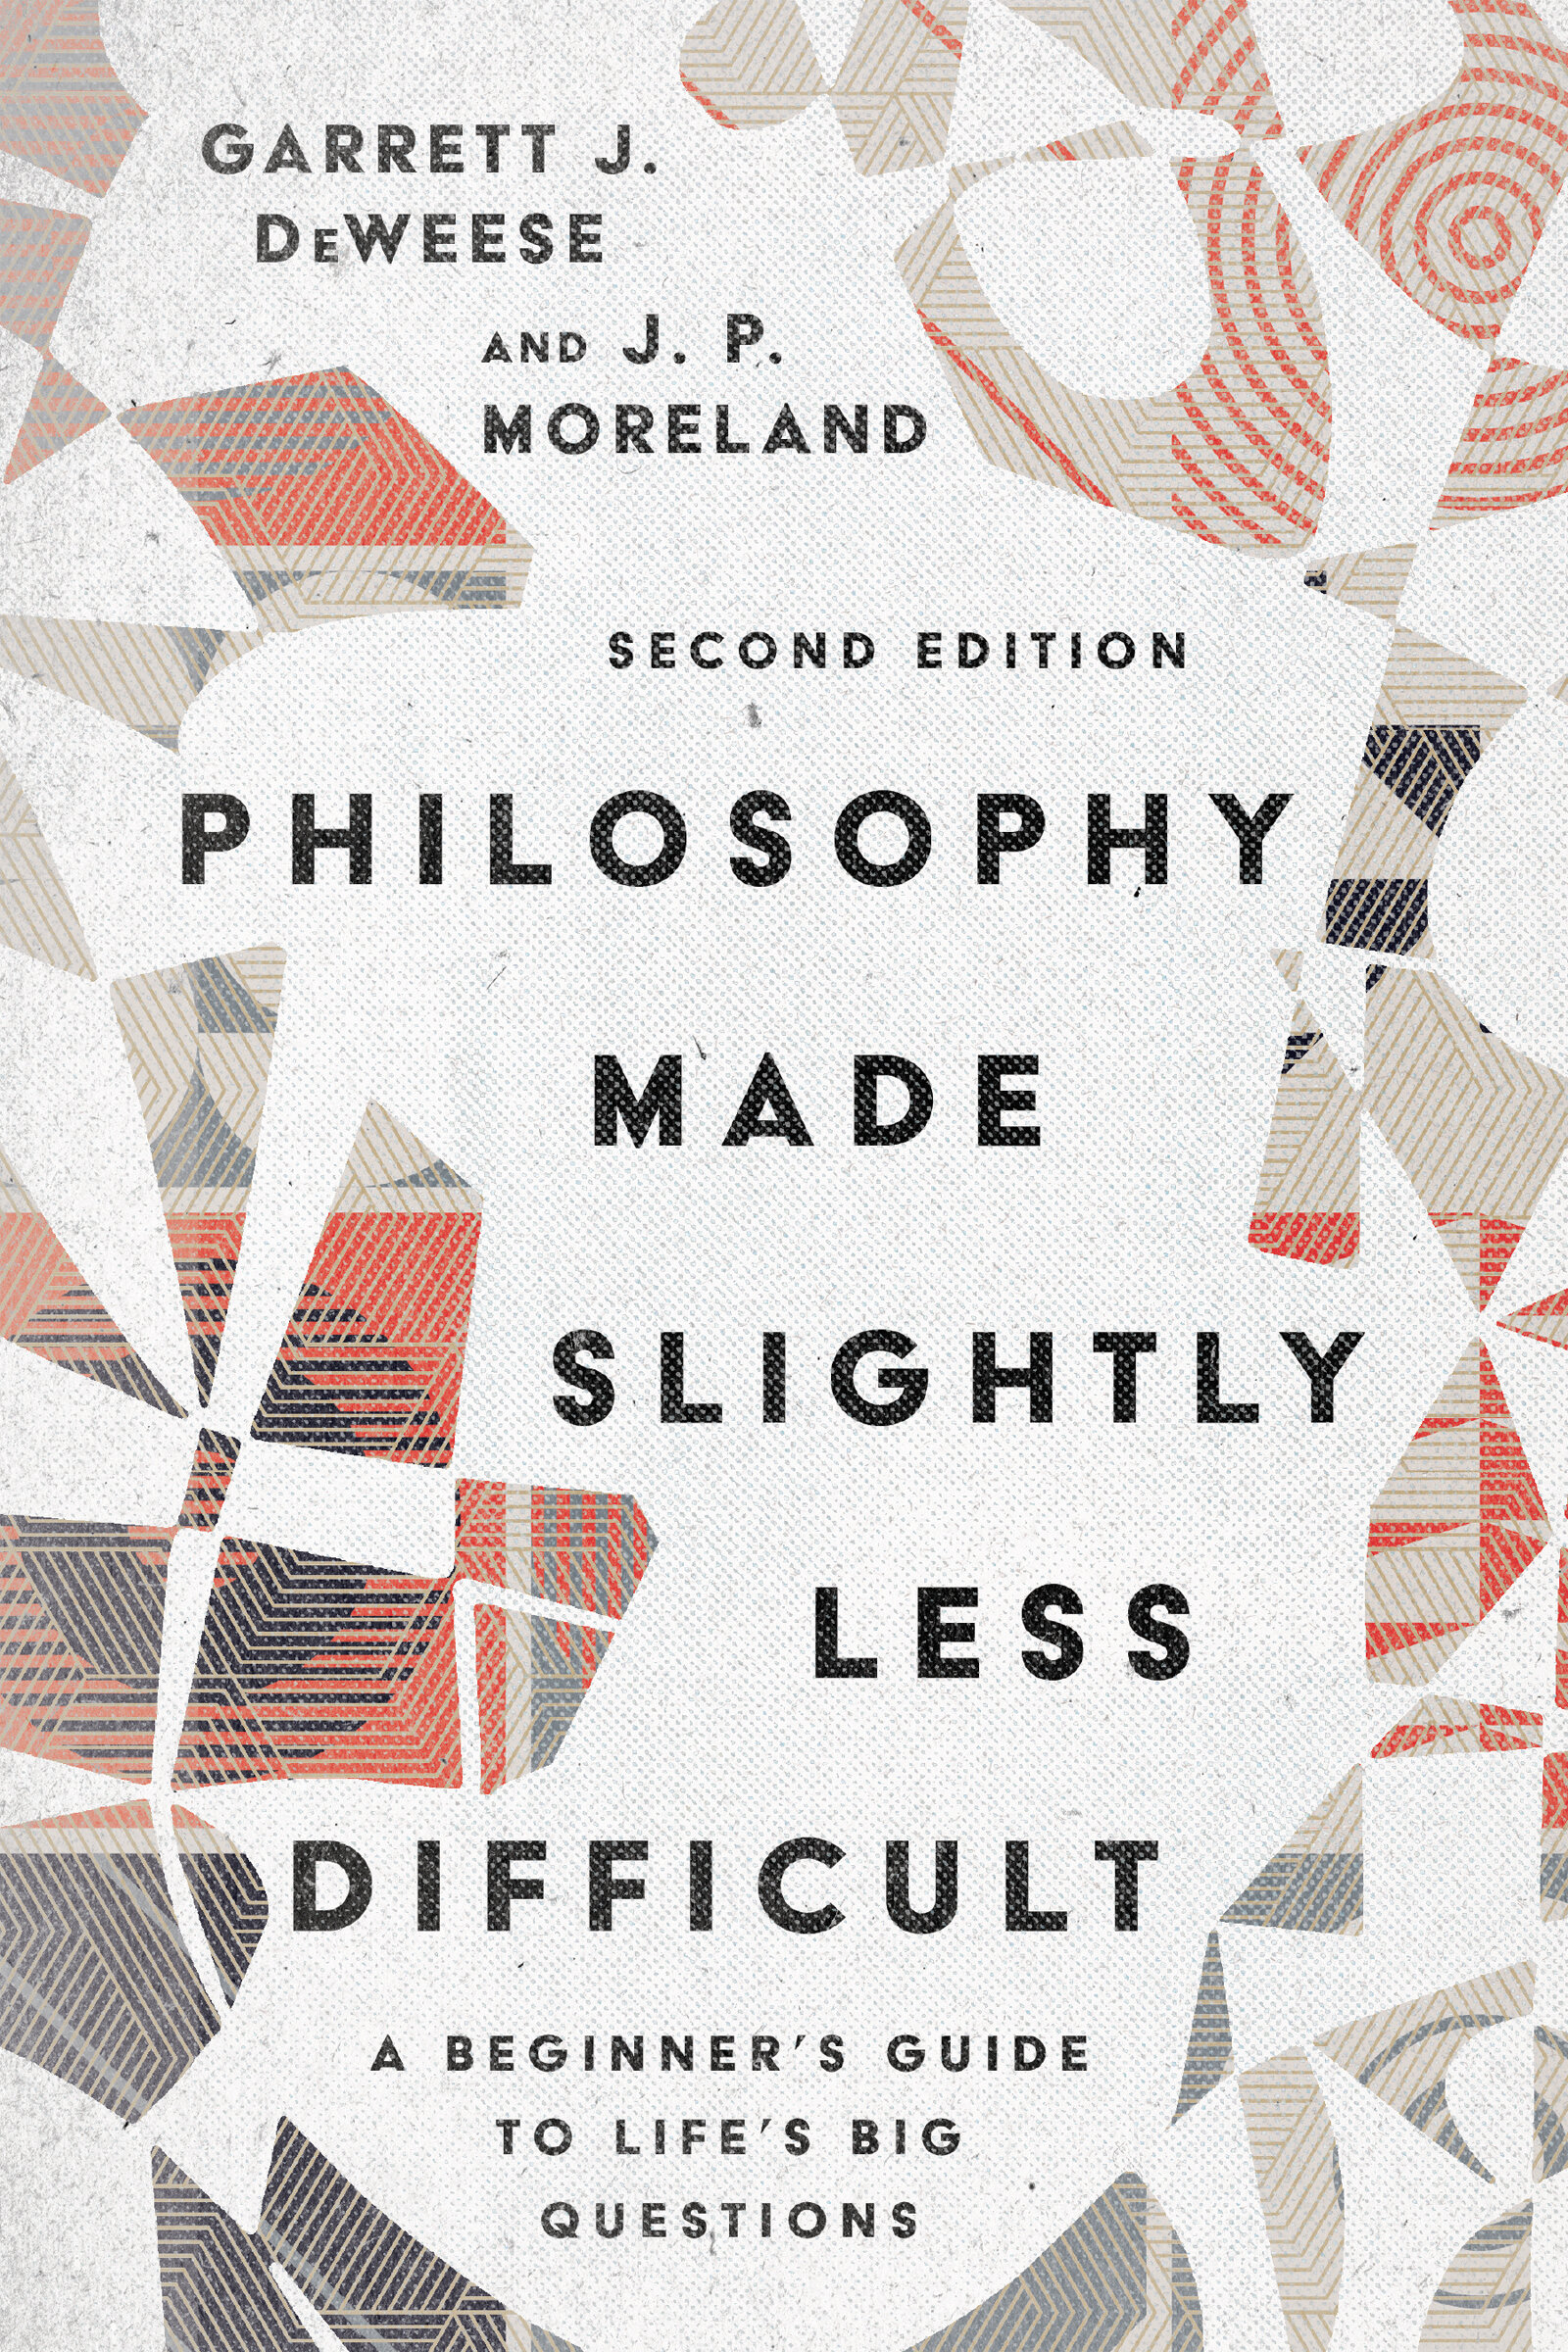 Philosophy Made Slightly Less Difficult: A Beginner's Guide to Life's Big Questions, 2nd ed.